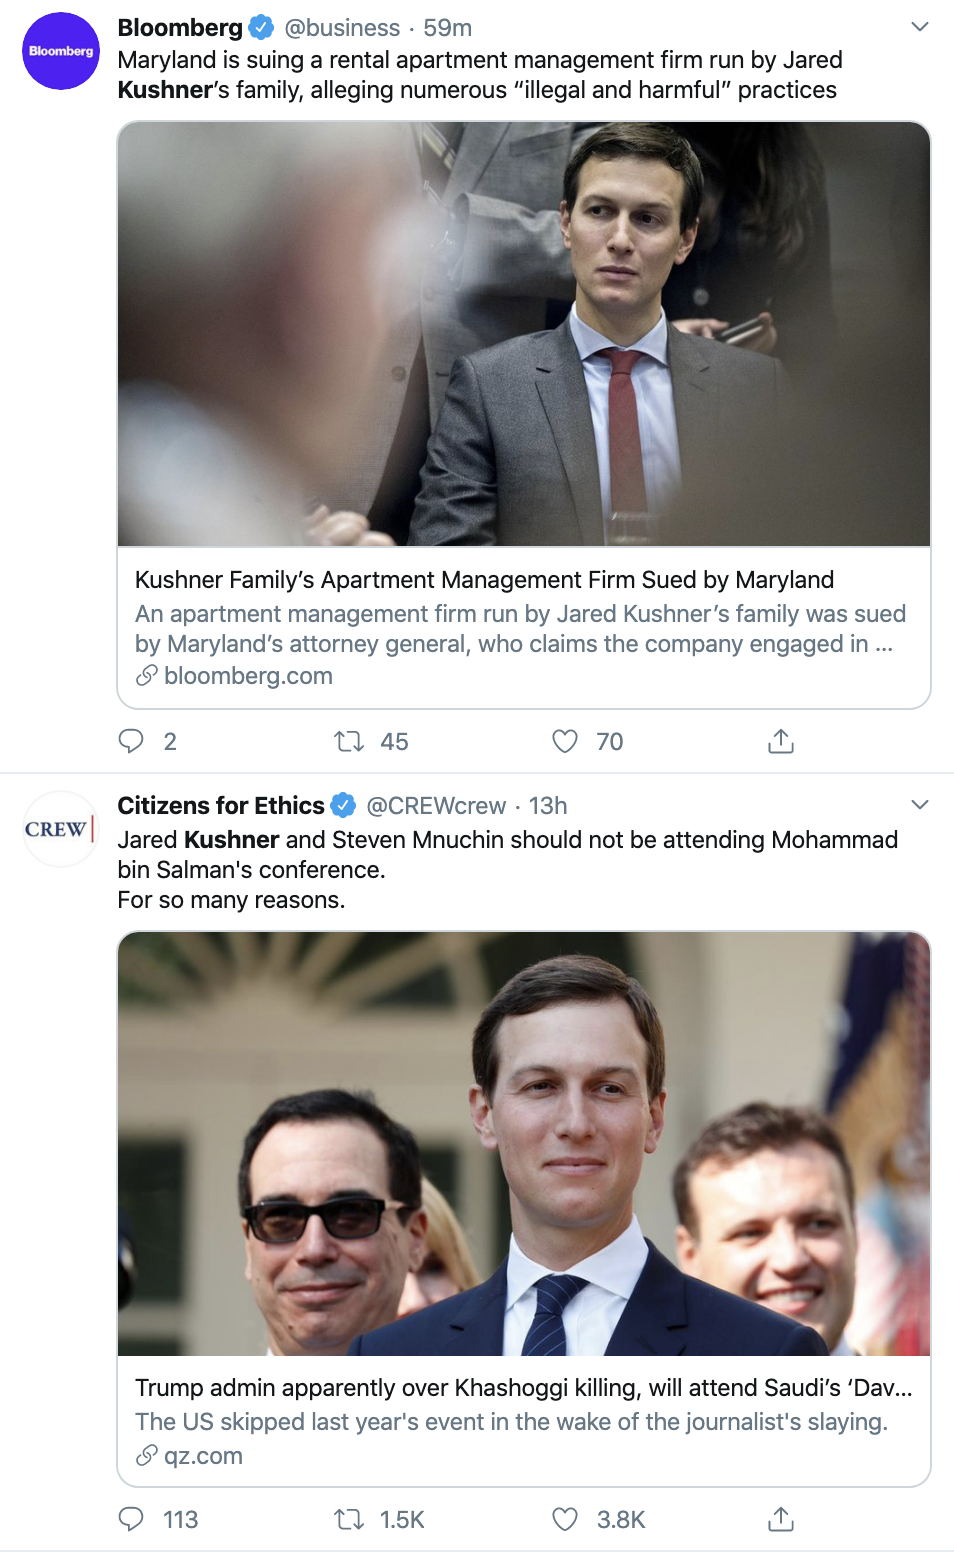 Screen-Shot-2019-10-23-at-12.43.07-PM Attorney General Hits Jared Kushner With Widespread Legal Action Civil Rights Corruption Crime Domestic Policy Donald Trump Featured Healthcare Politics Poverty Racism Scandal Top Stories White Privilege White Supremacy